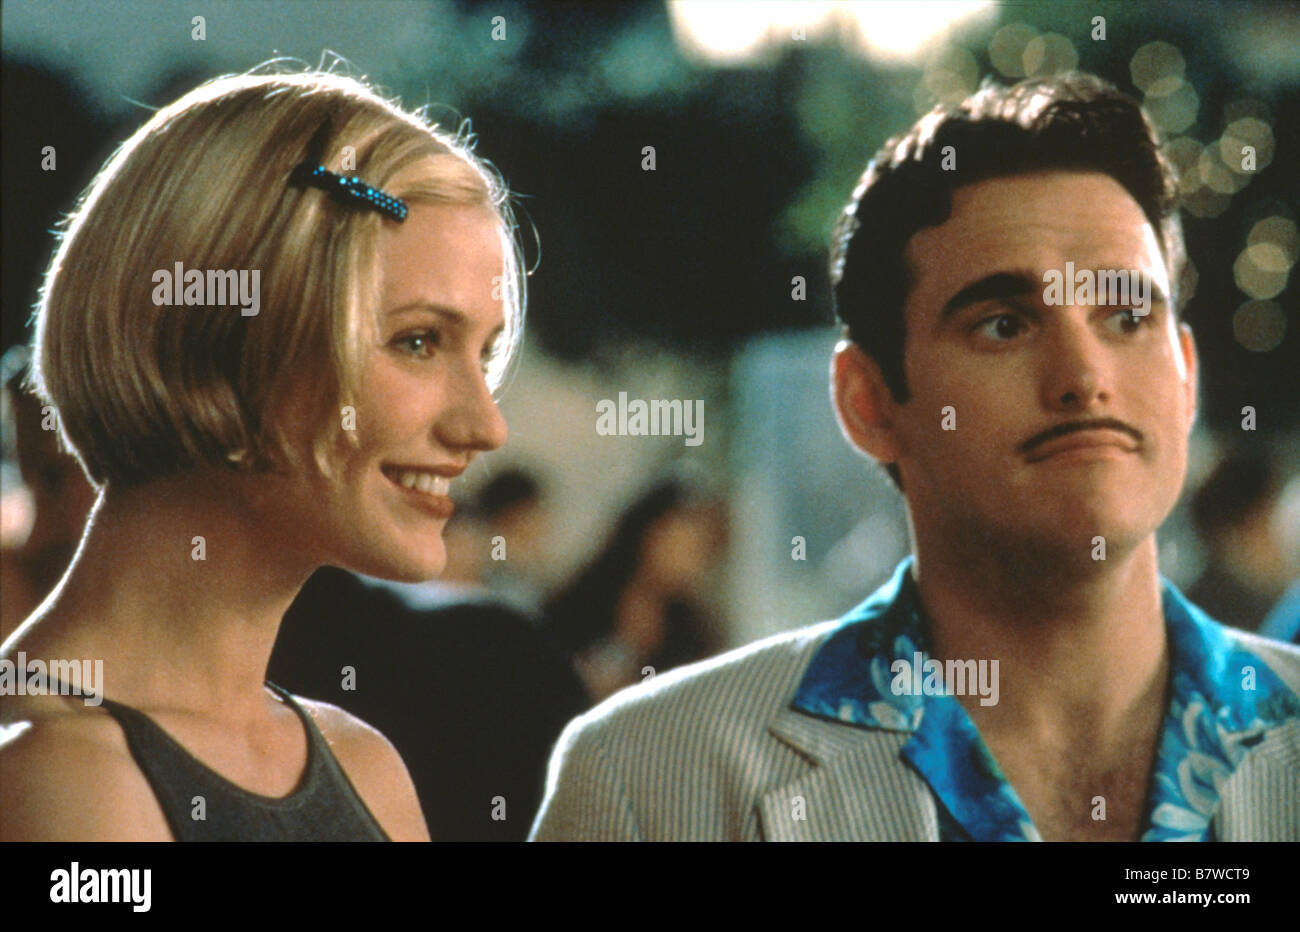 There's Something About Mary  Year: 1998  USA Cameron Diaz, Matt Dillon  Director: Bobby Farrelly, Peter Farrelly - Stock Image